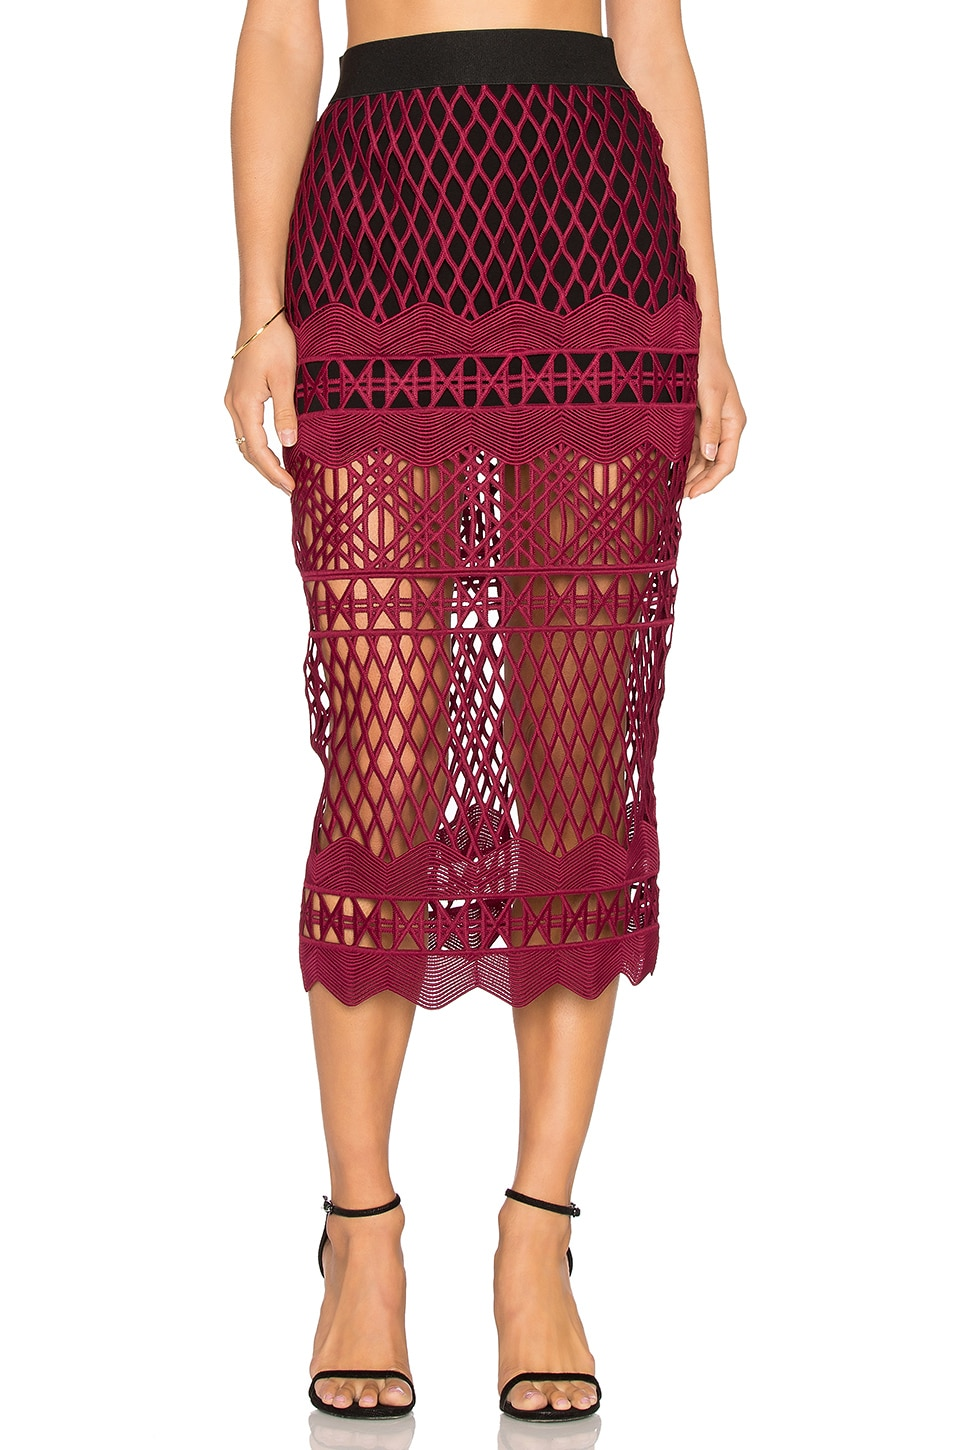 self-portrait Cut Out Lace Pencil Skirt in Burgundy & Black | REVOLVE